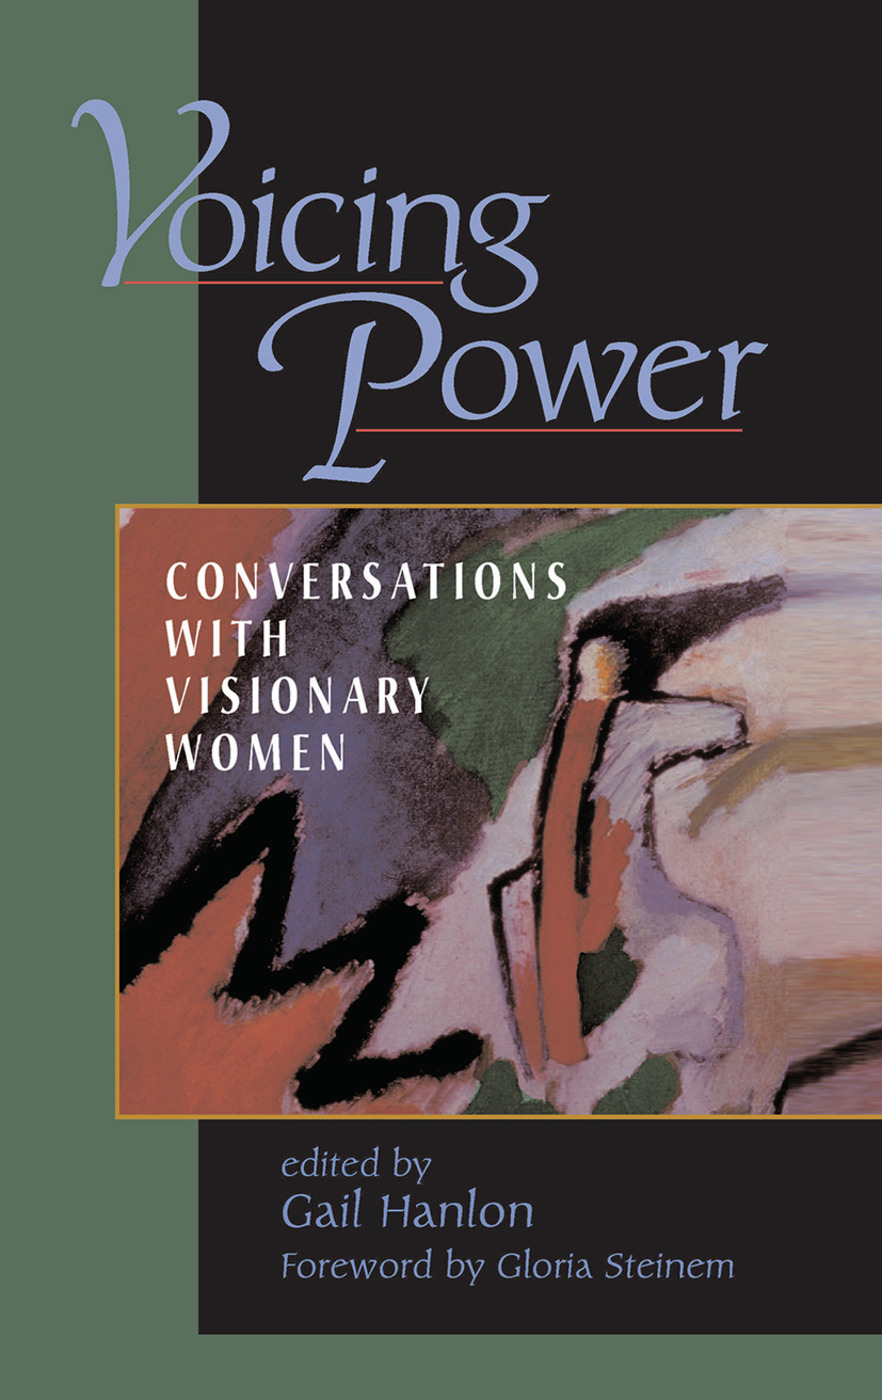 Voicing Power: Conversations With Visionary Women book cover